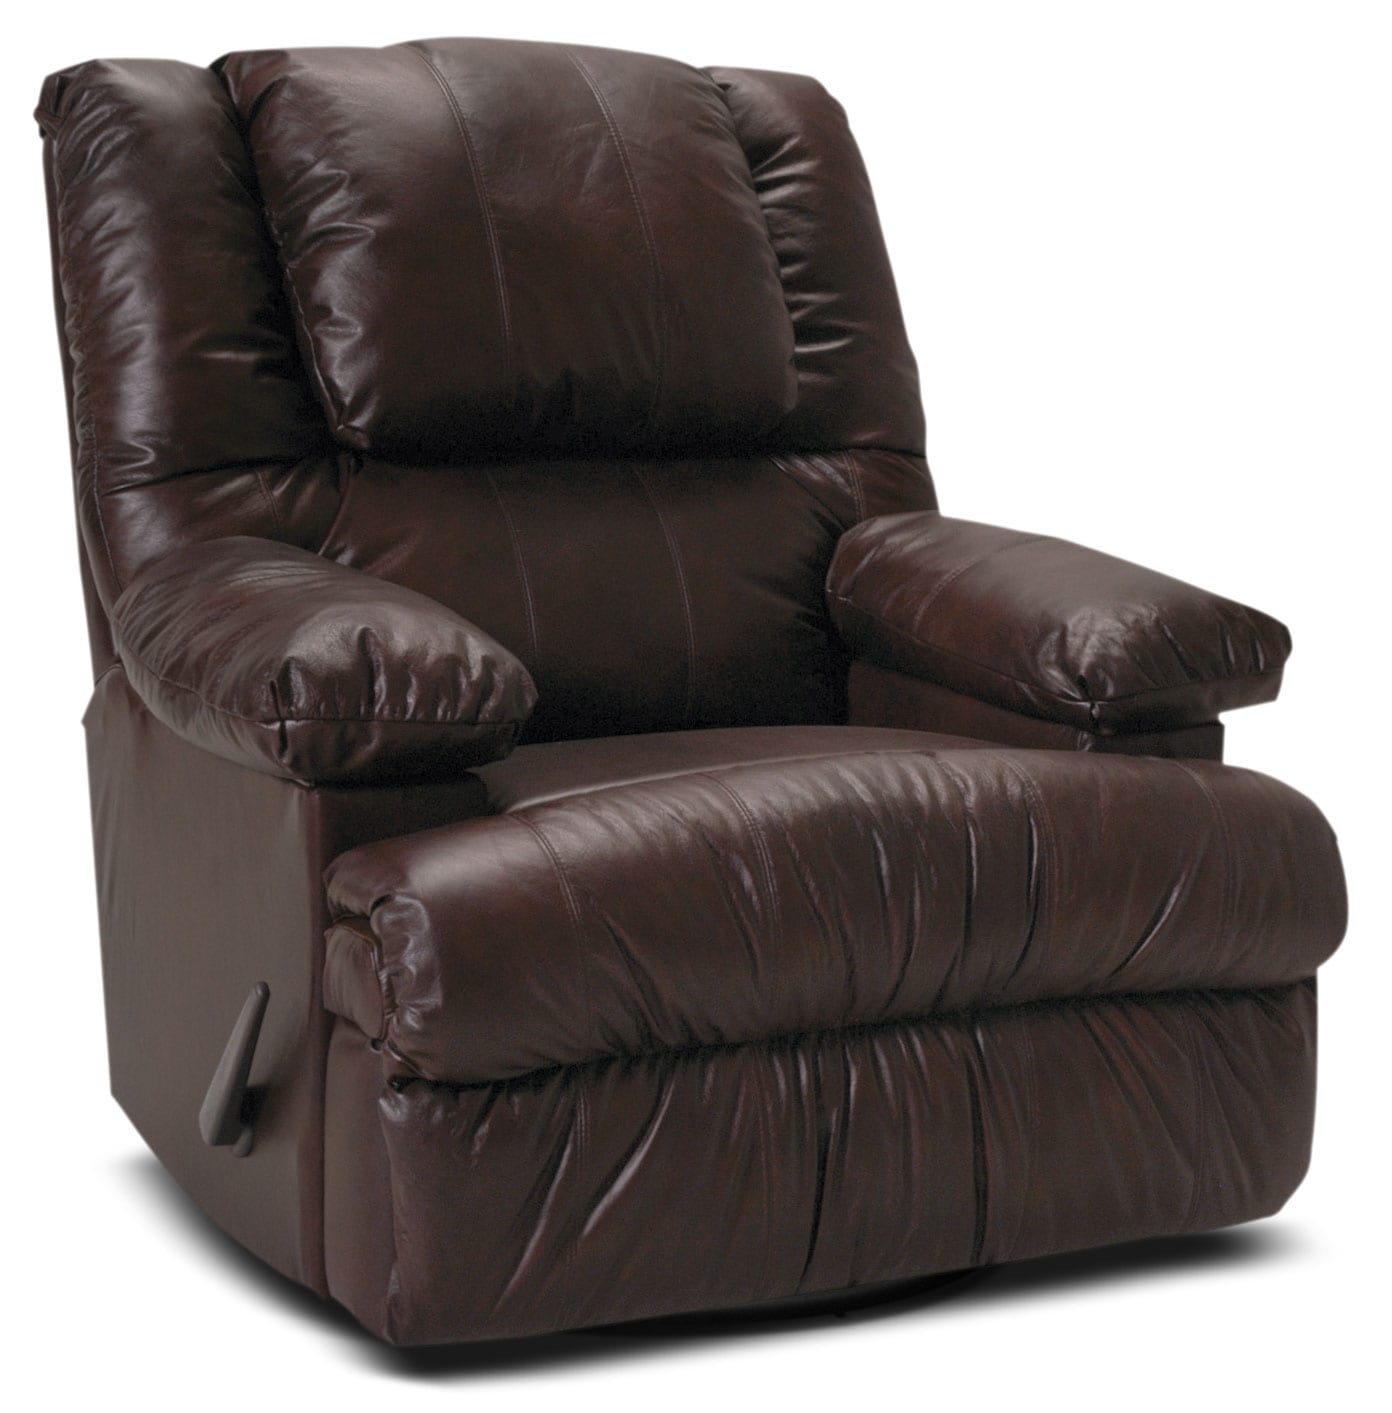 Designed2B Recliner 5598 Bonded Leather Swivel Rocker with Storage Arms - Java